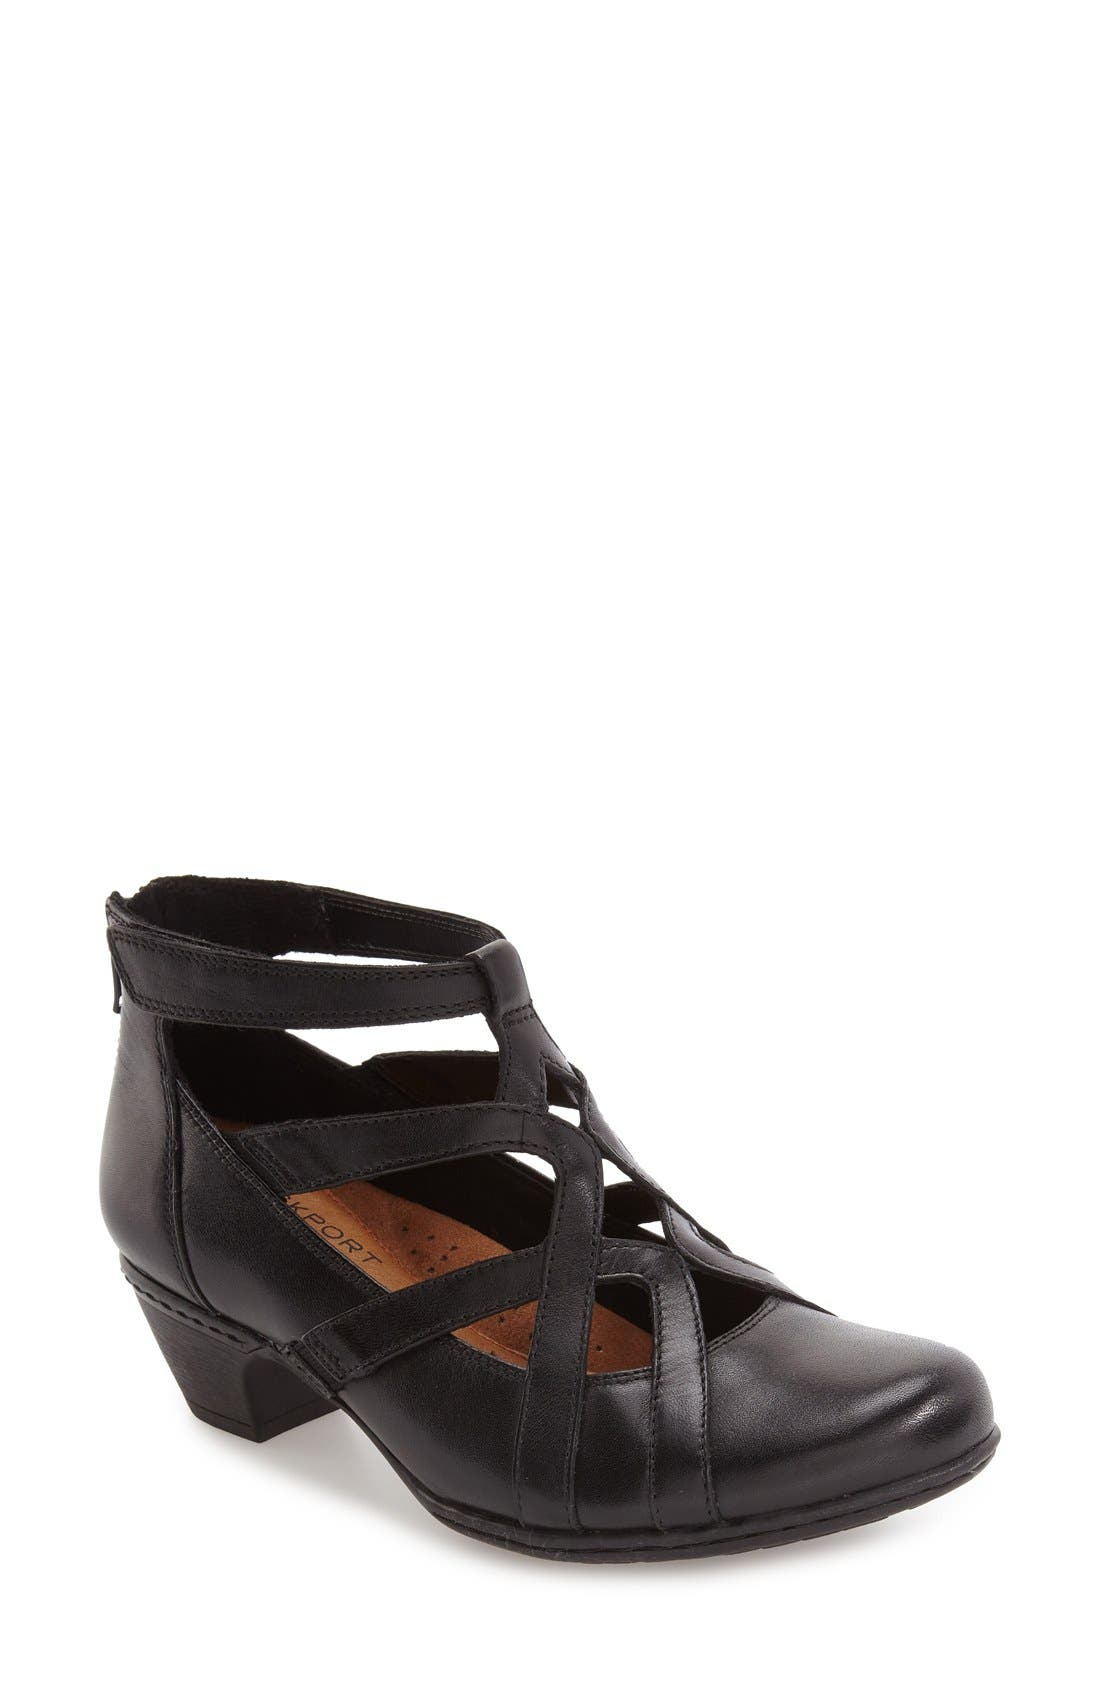 Adrina Pump,                         Main,                         color, Black Leather